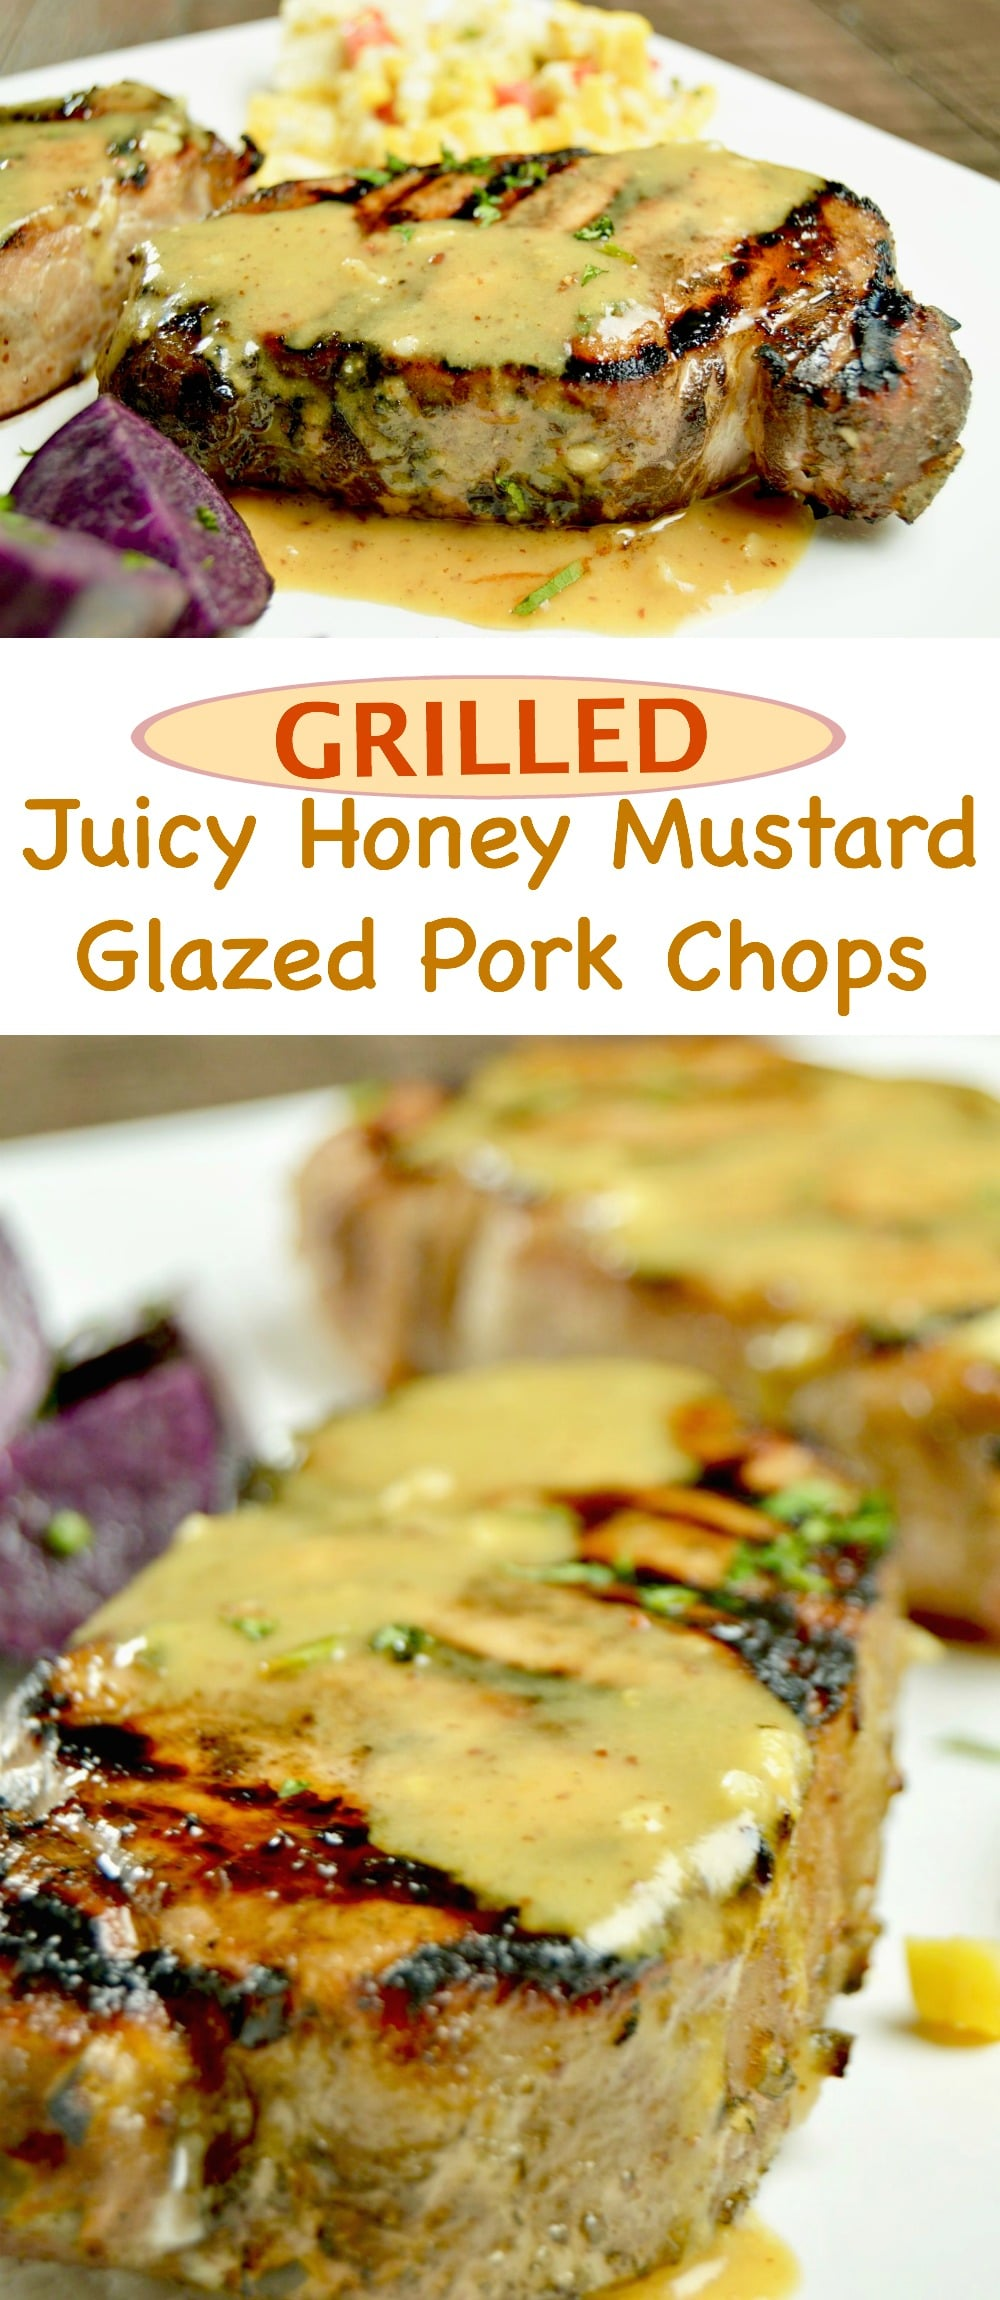 Juicy Grilled Honey Mustard Glazed Pork Chops Recipe is the no fail way to make succulent, tender chops.  Marinate for 30 minutes, grill and have them on the table in about 20 minutes.  Perfect for Entertaining!